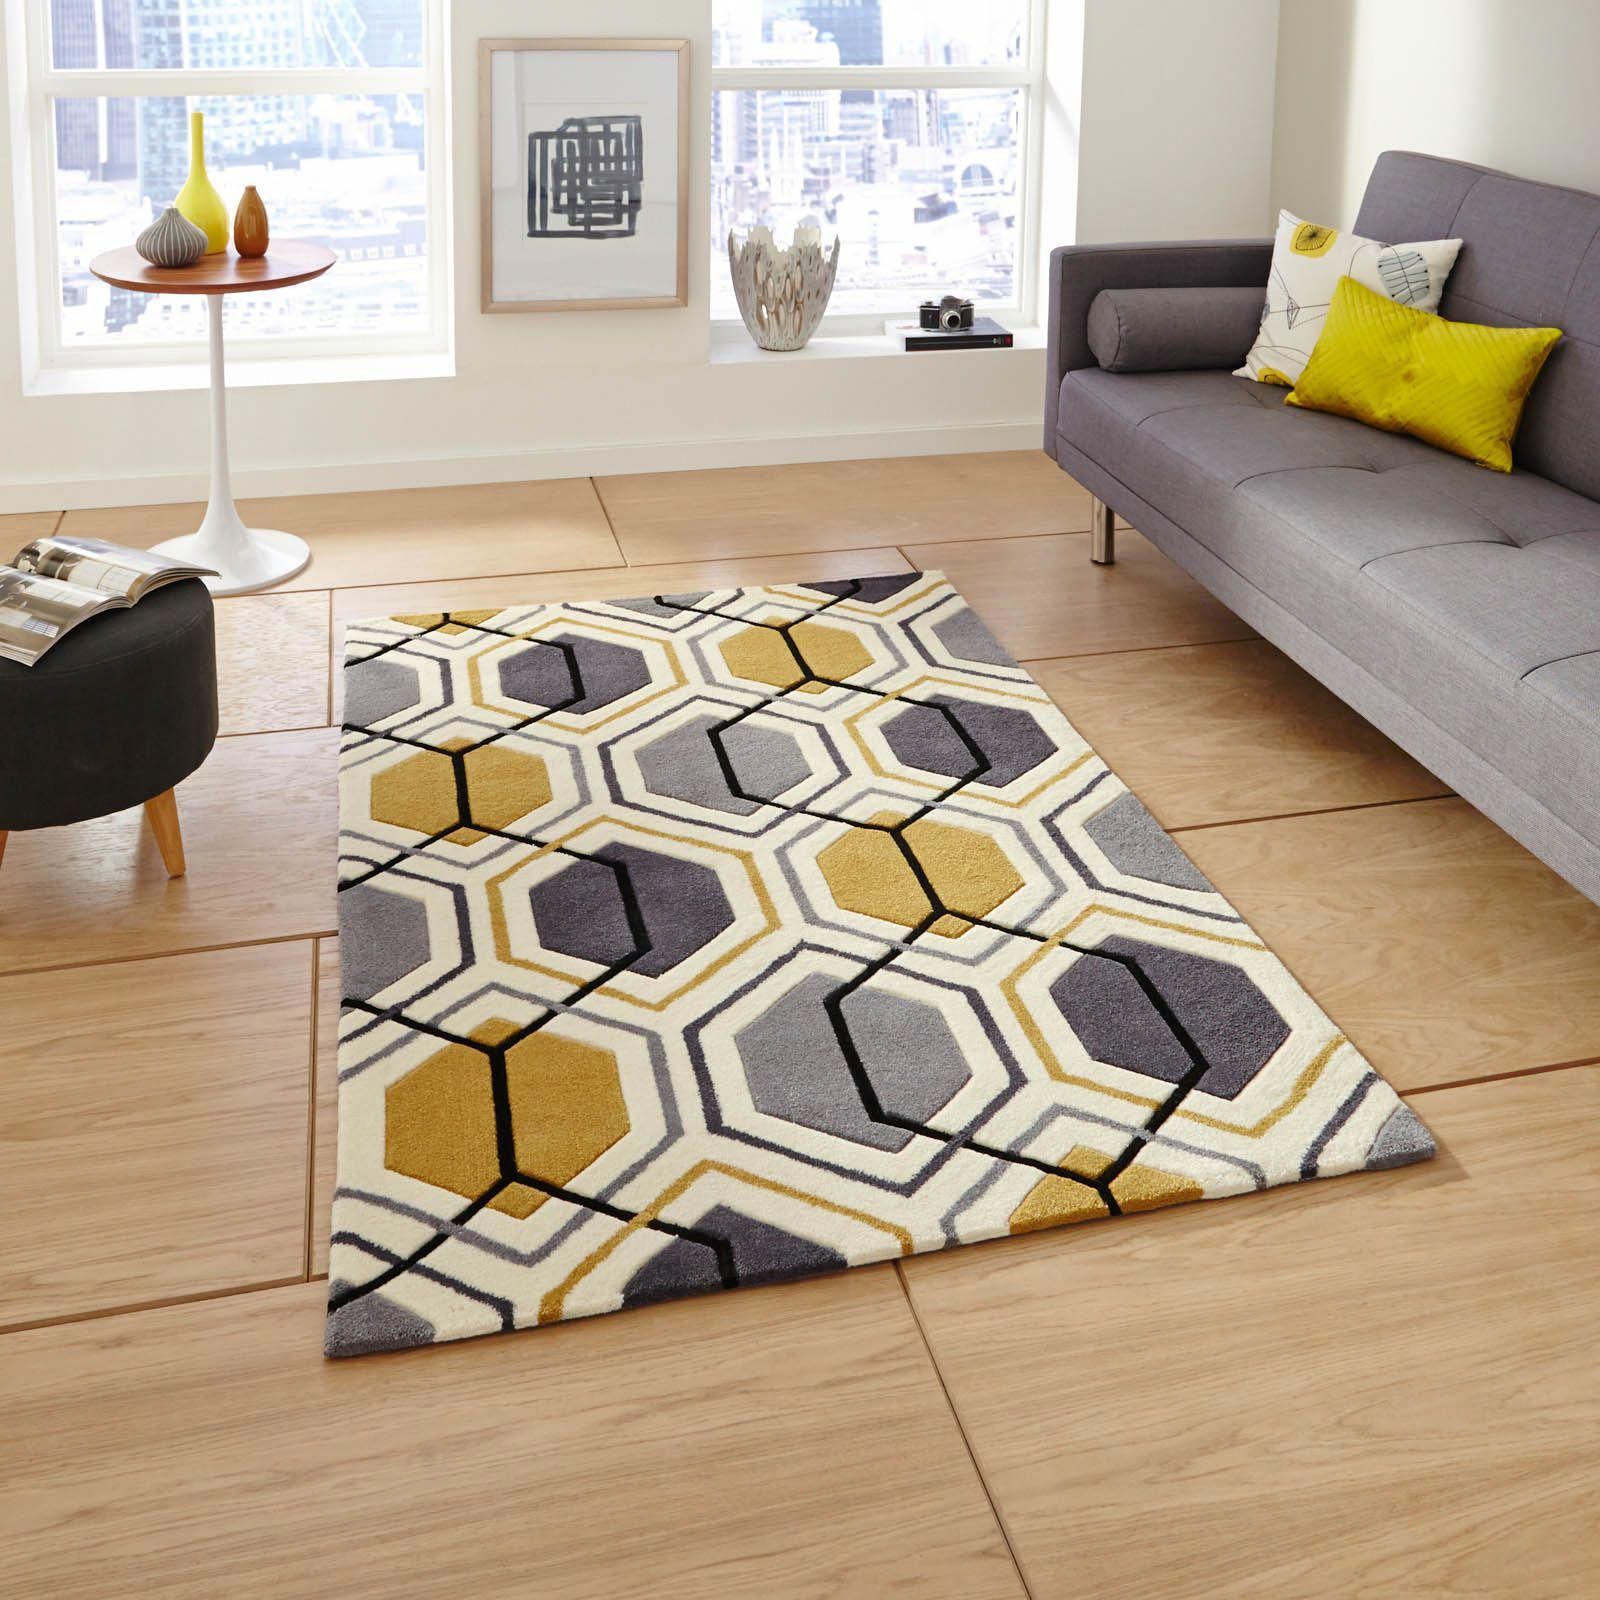 The Contemporary Geometric Design In Grey And Yellow Is Sure To Be